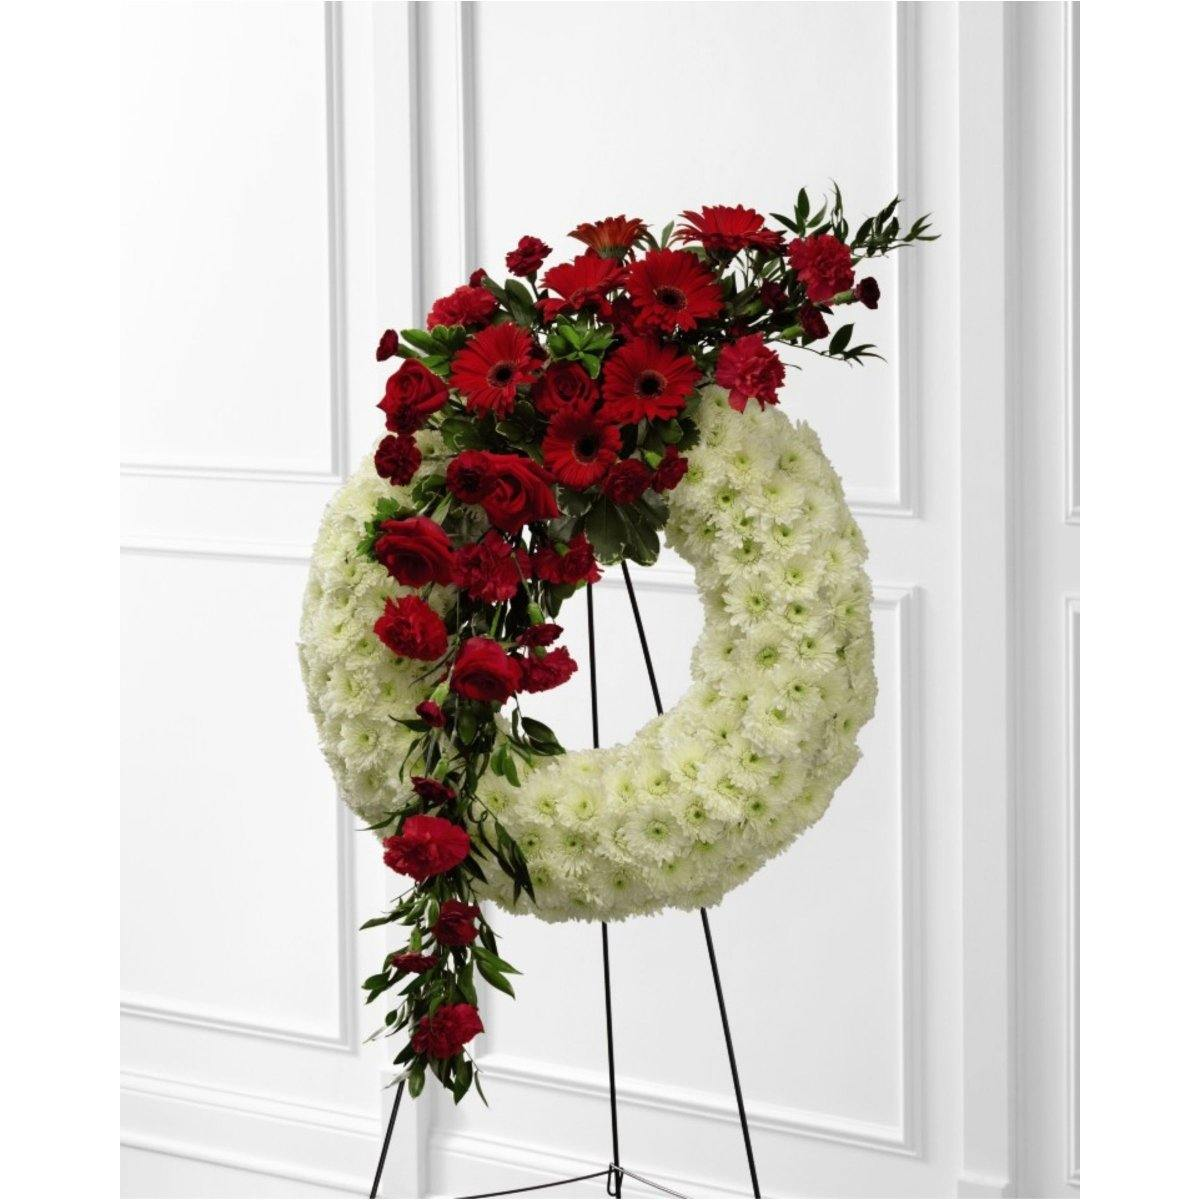 The FTD® Graceful Tribute Wreath